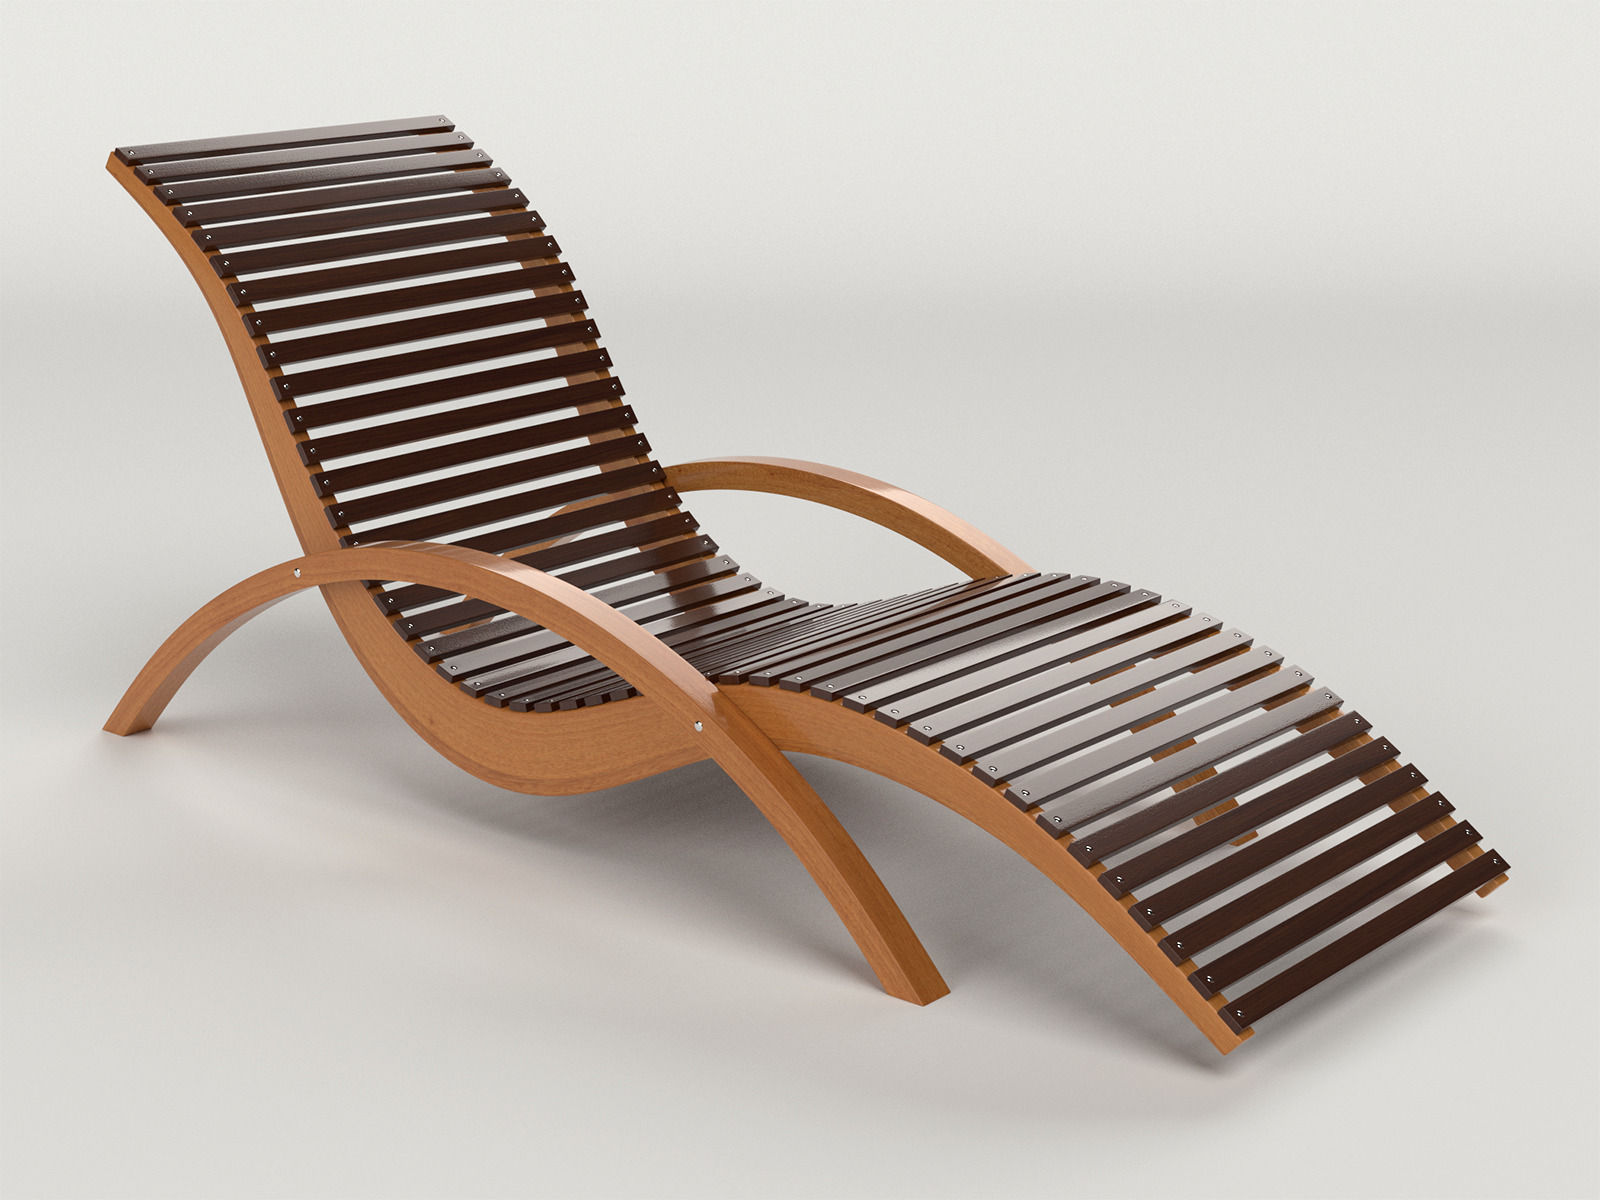 lounge chair outdoor wood patio deck 3d model obj dxf mtl 1